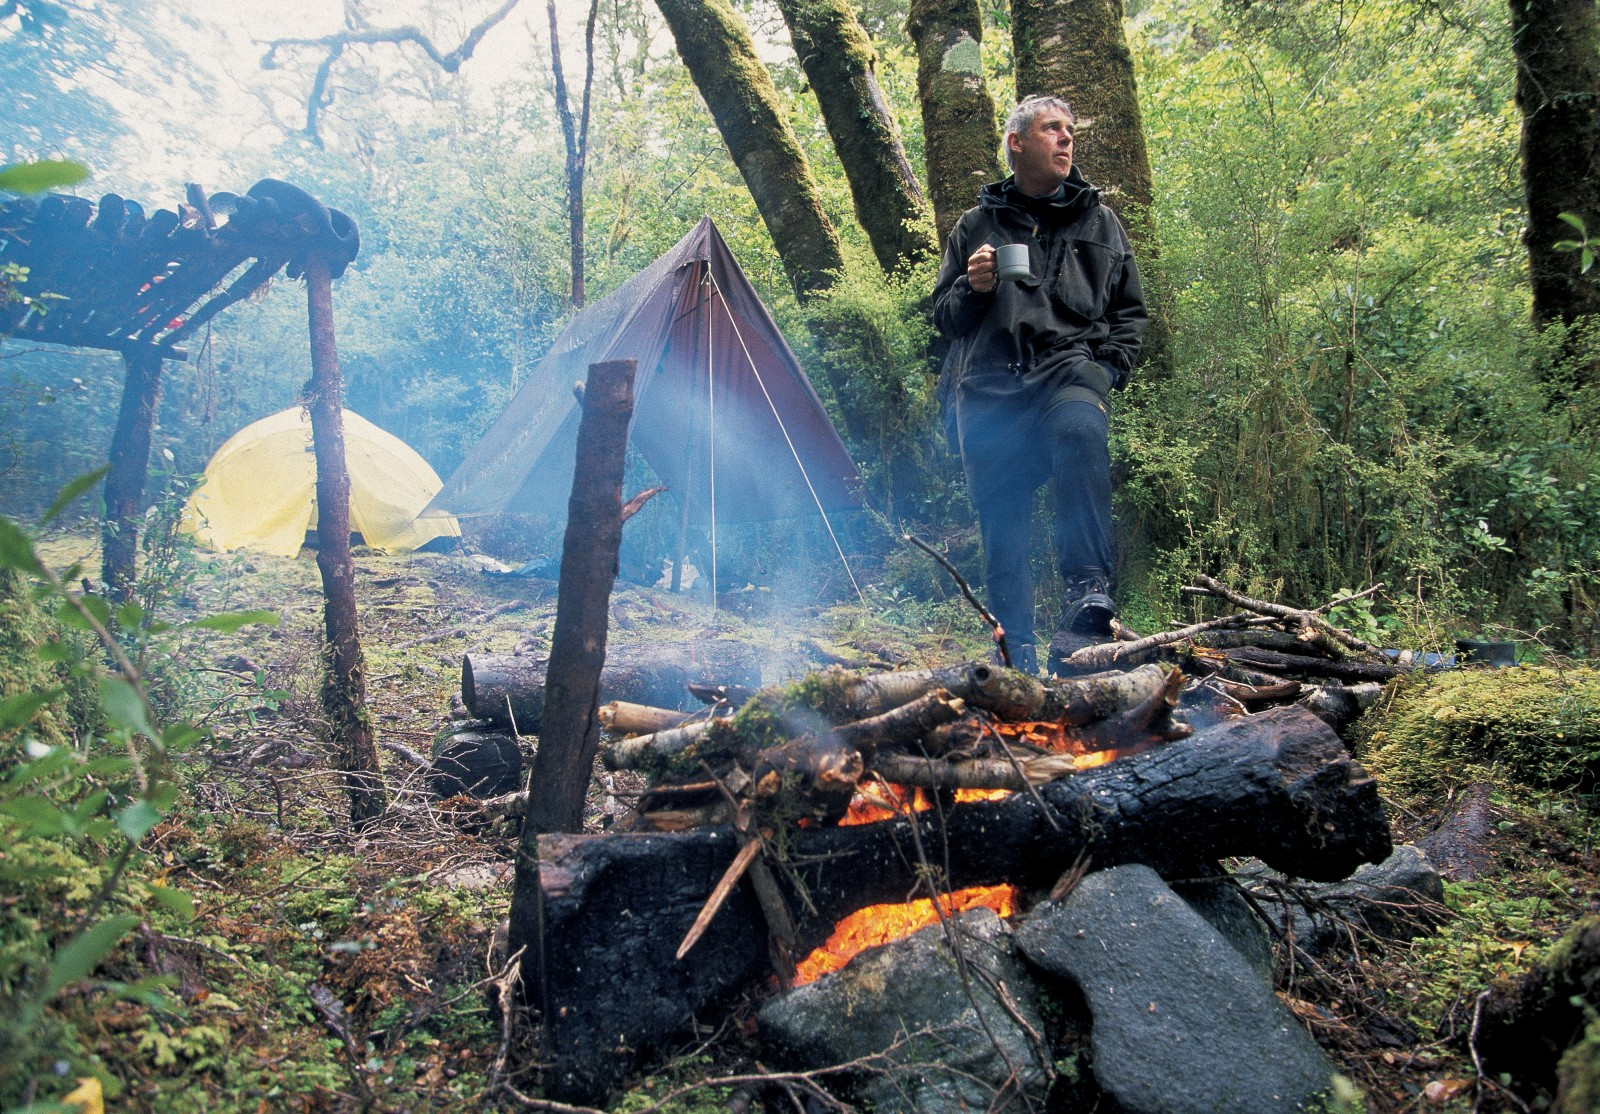 Ken Tustin, regularly accompanied by his wife Marg, has spent many months camping in Fiordland over the years, as they search for moose and clues to the biology of these elusive animals. Mostly they camp by Herrick Creek which empties into the south side of Wet Jacket Arm, an area in which they have found frequent signs of moose.